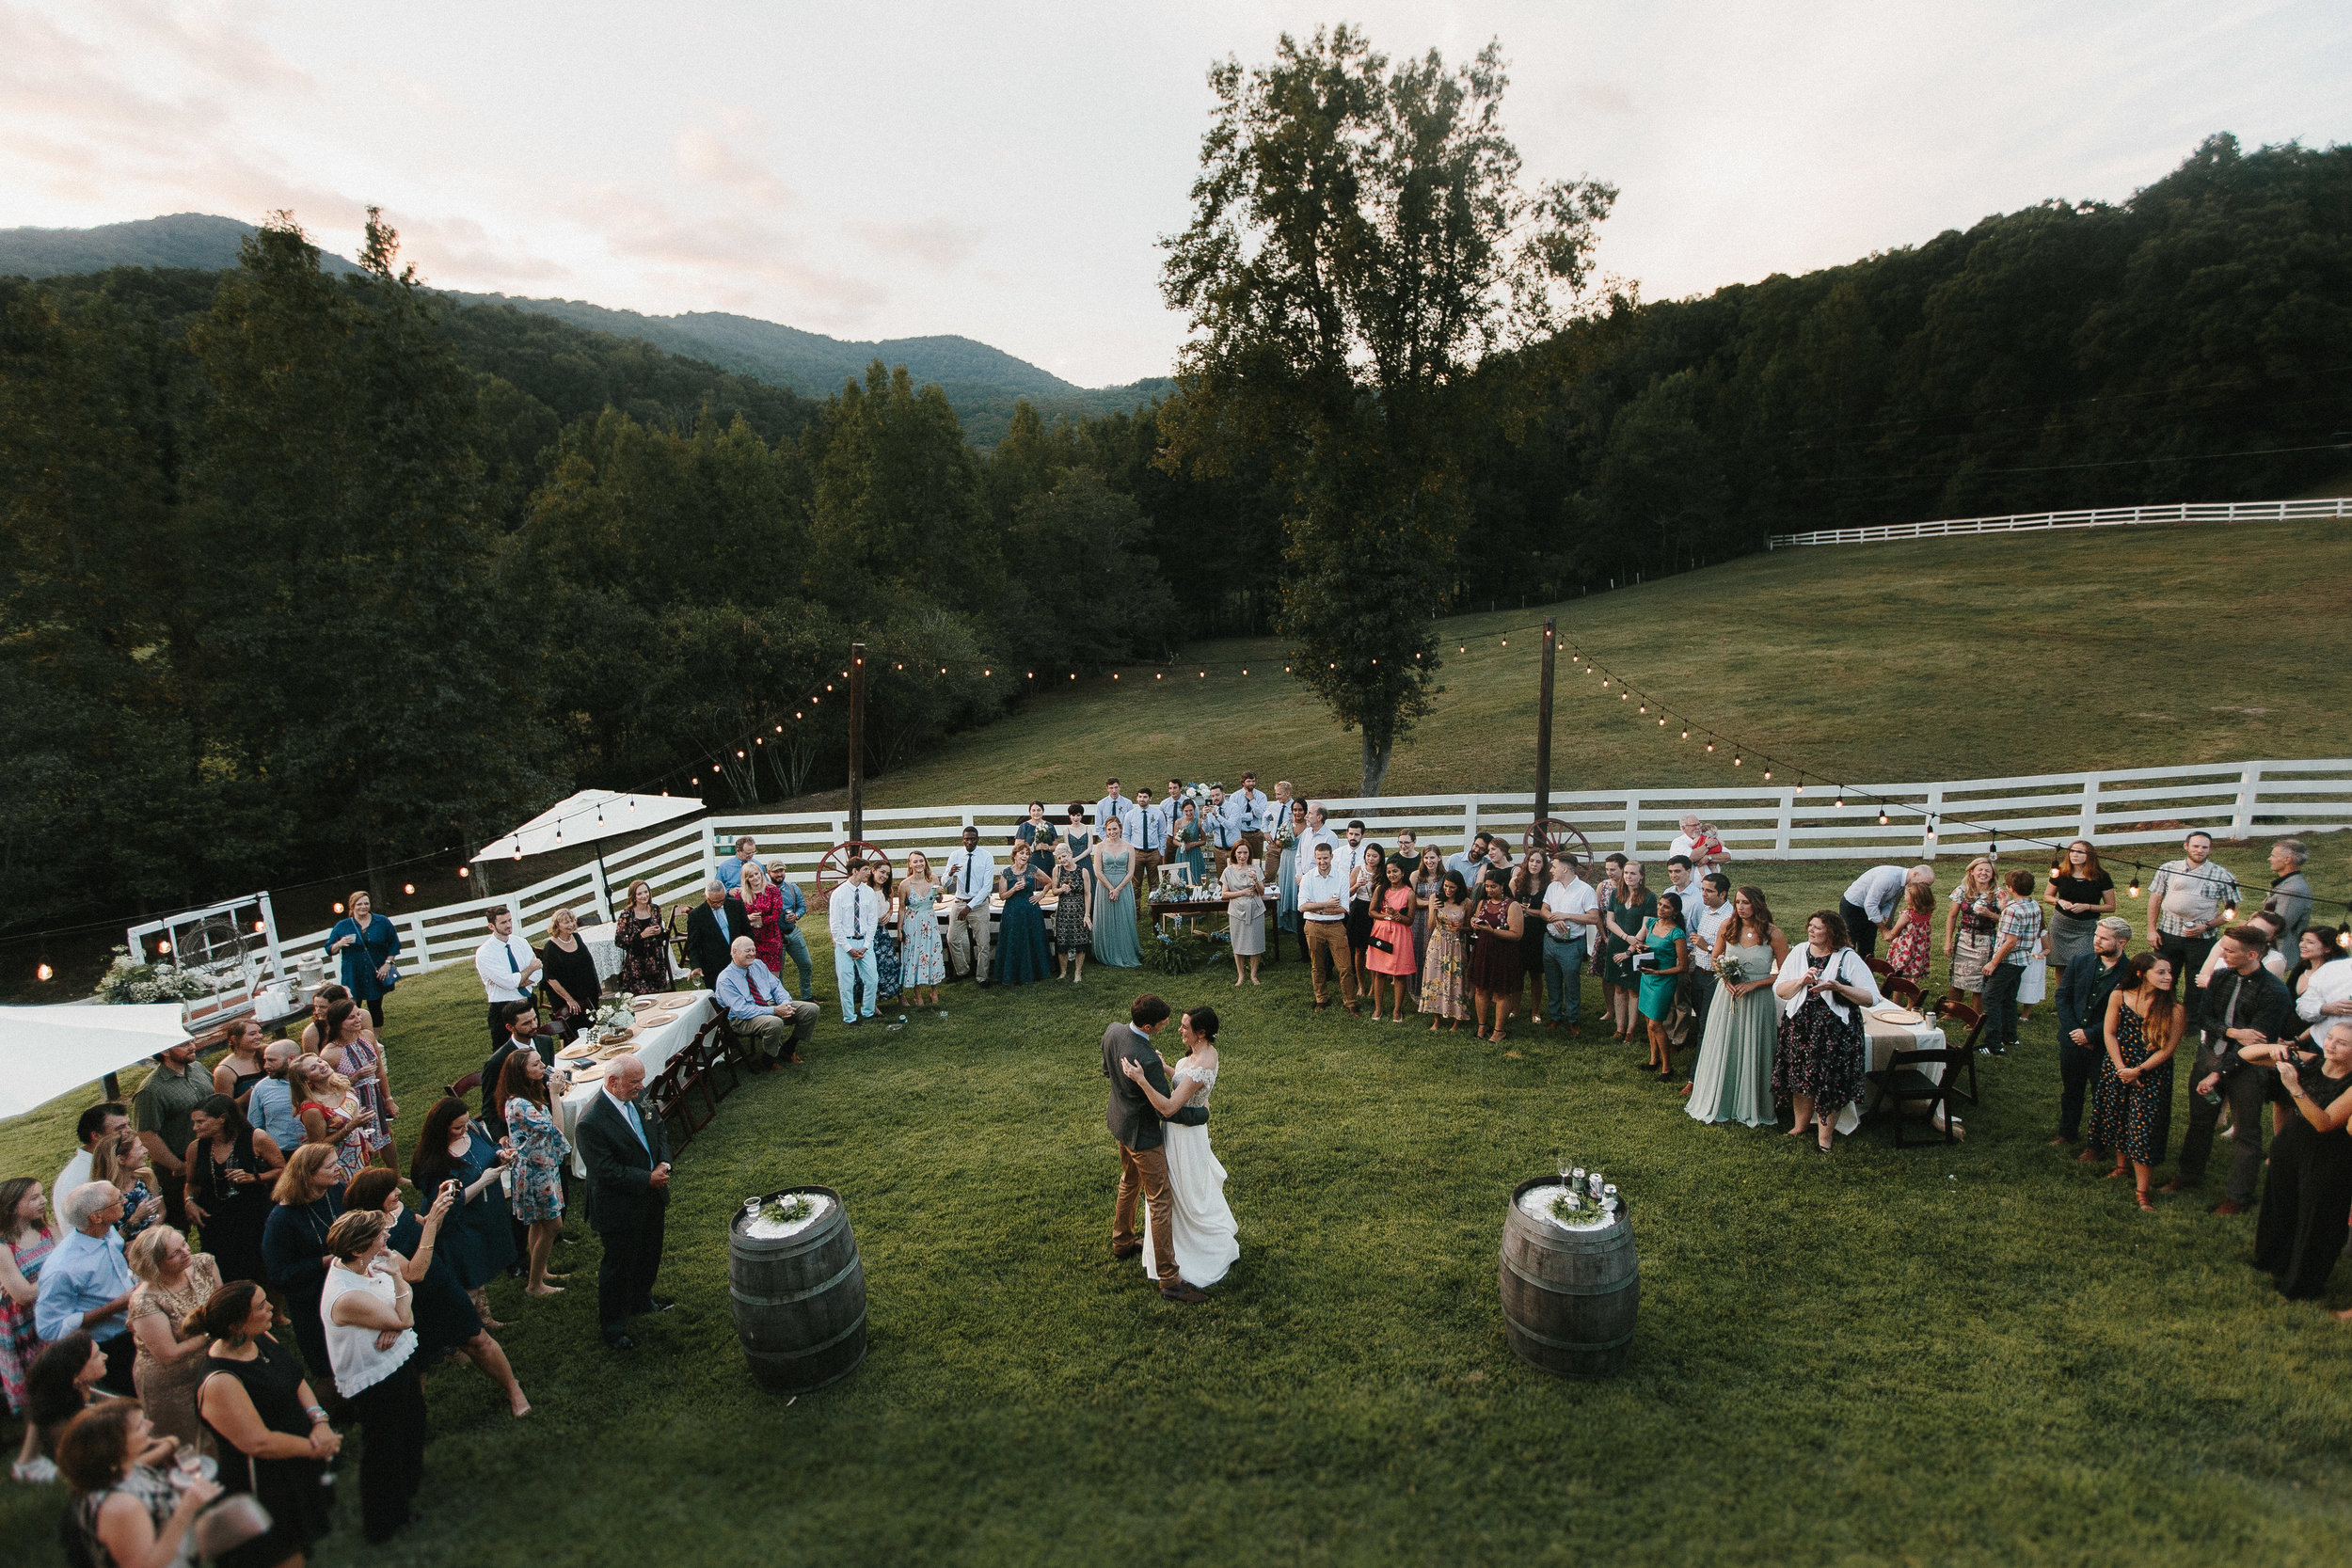 cleveland_georgia_mountain_laurel_farm_natural_classic_timeless_documentary_candid_wedding_emotional_photojournalism_river_west_1899.jpg